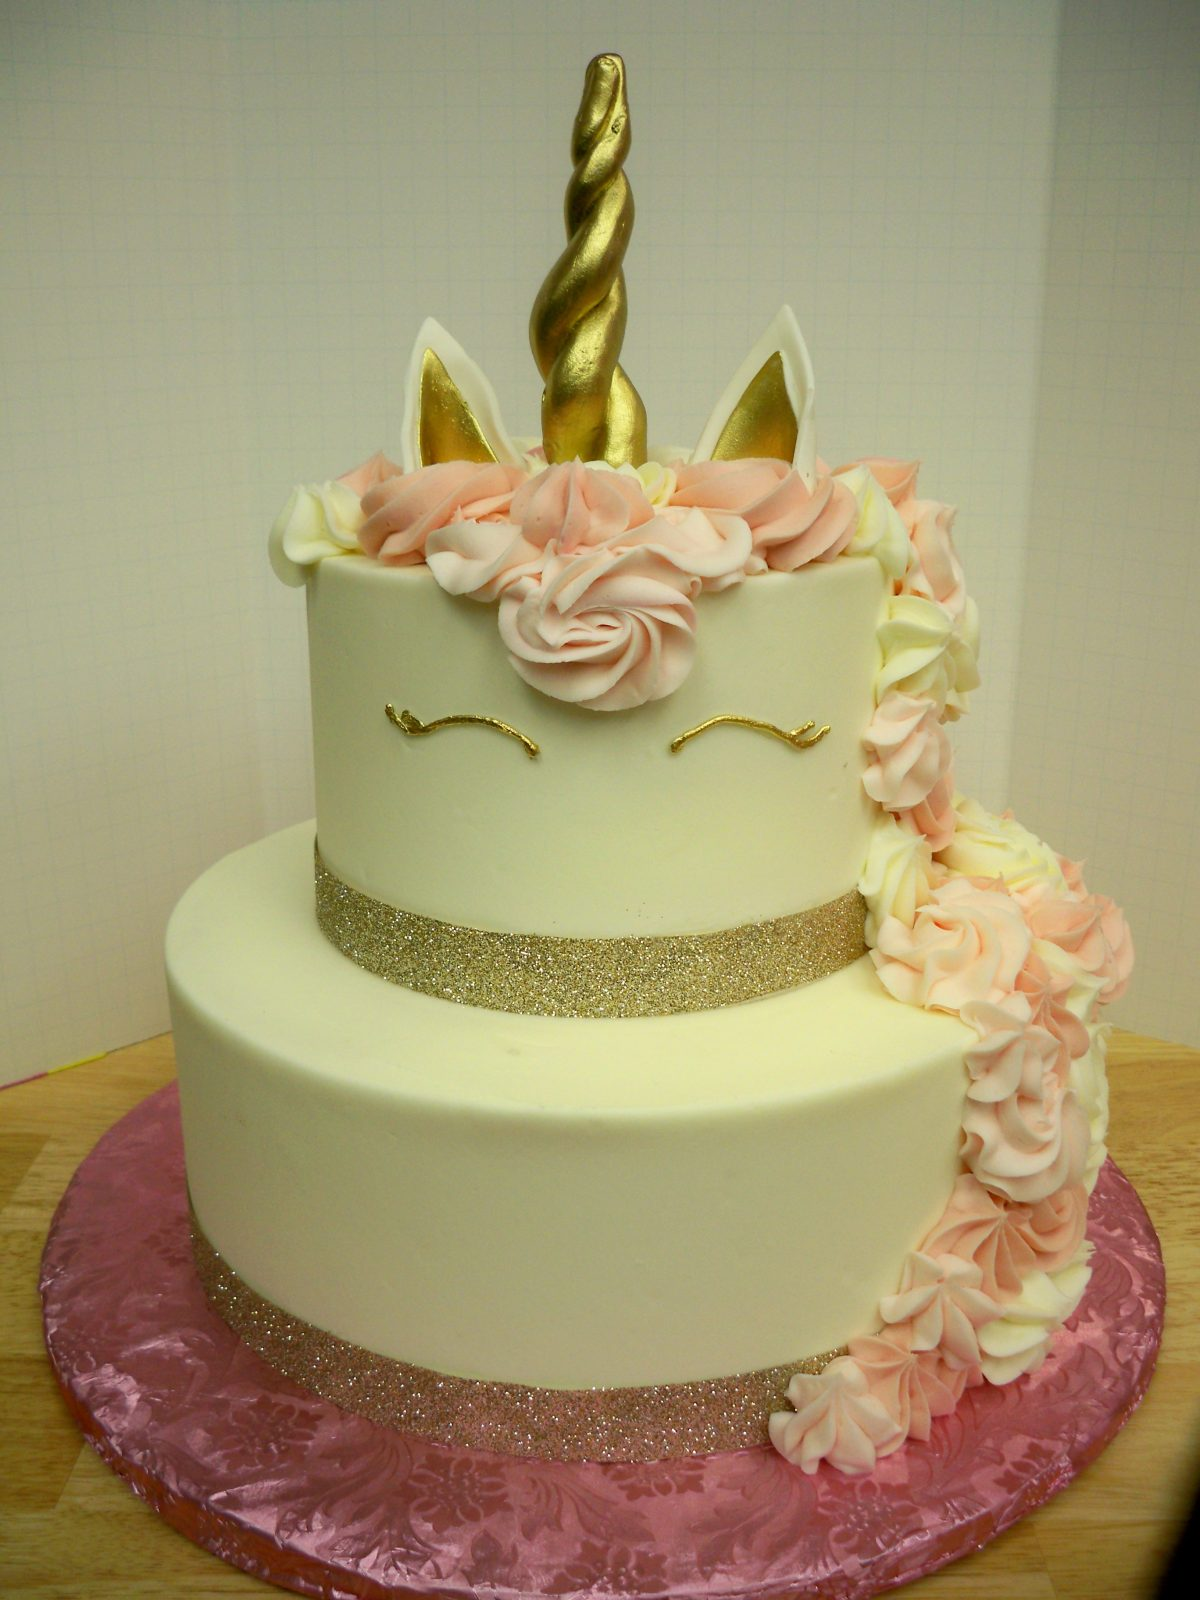 unicorn head, two tier unicorn cake, magical cake